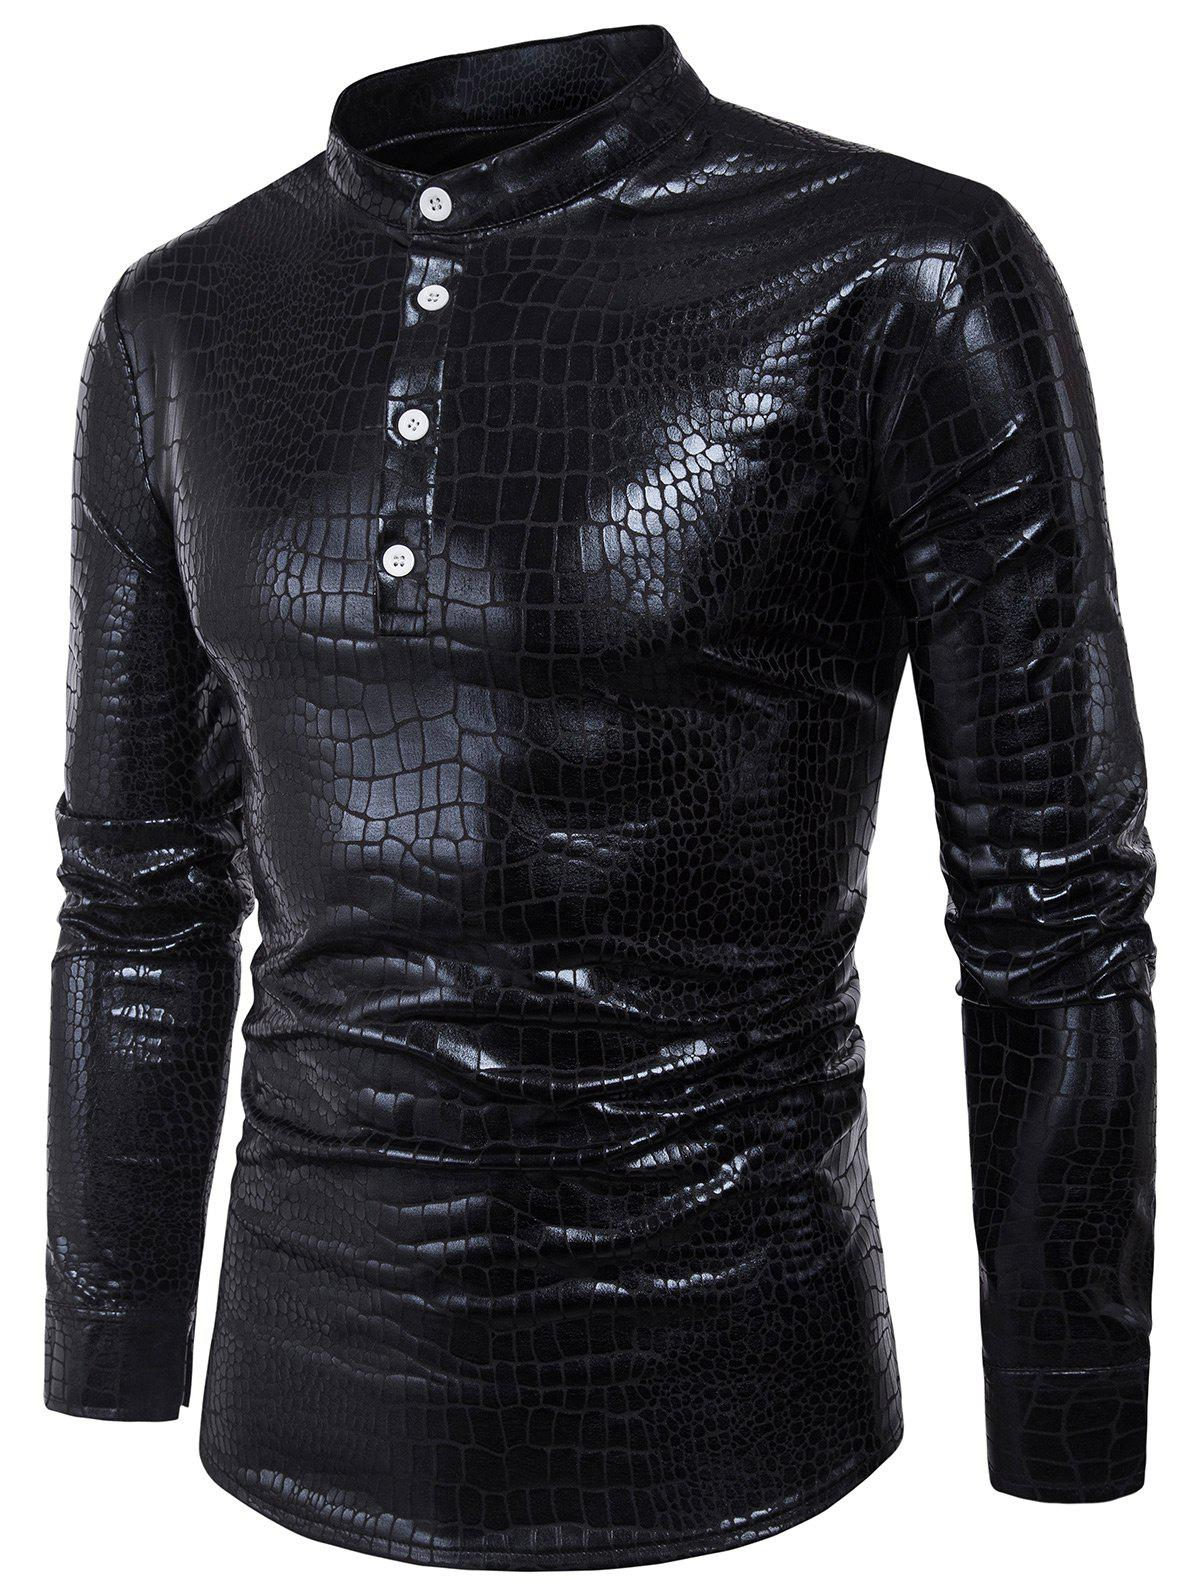 Find great deals on eBay for leather long sleeve shirt. Shop with confidence.